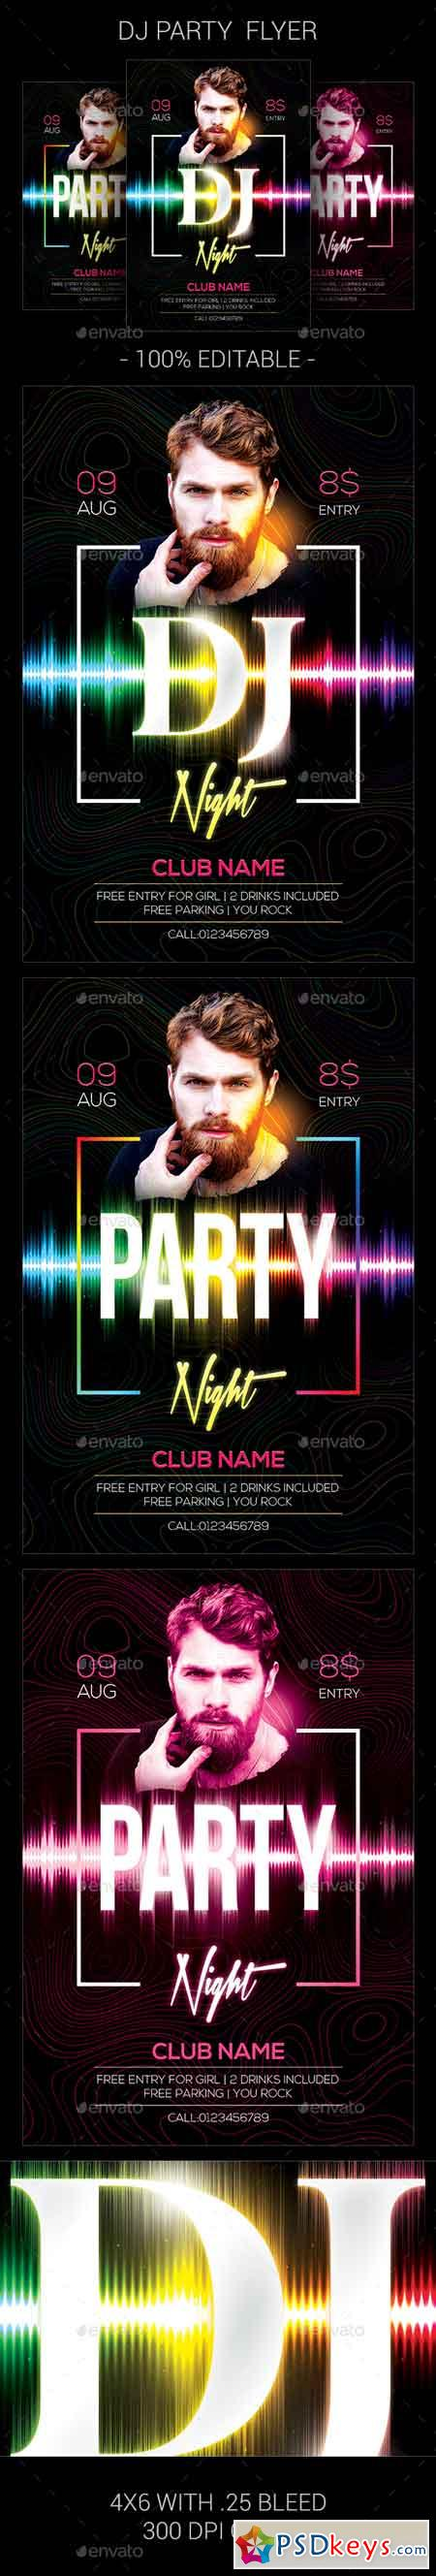 Flyer Templates » Free Download Photoshop Vector Stock image Via ...